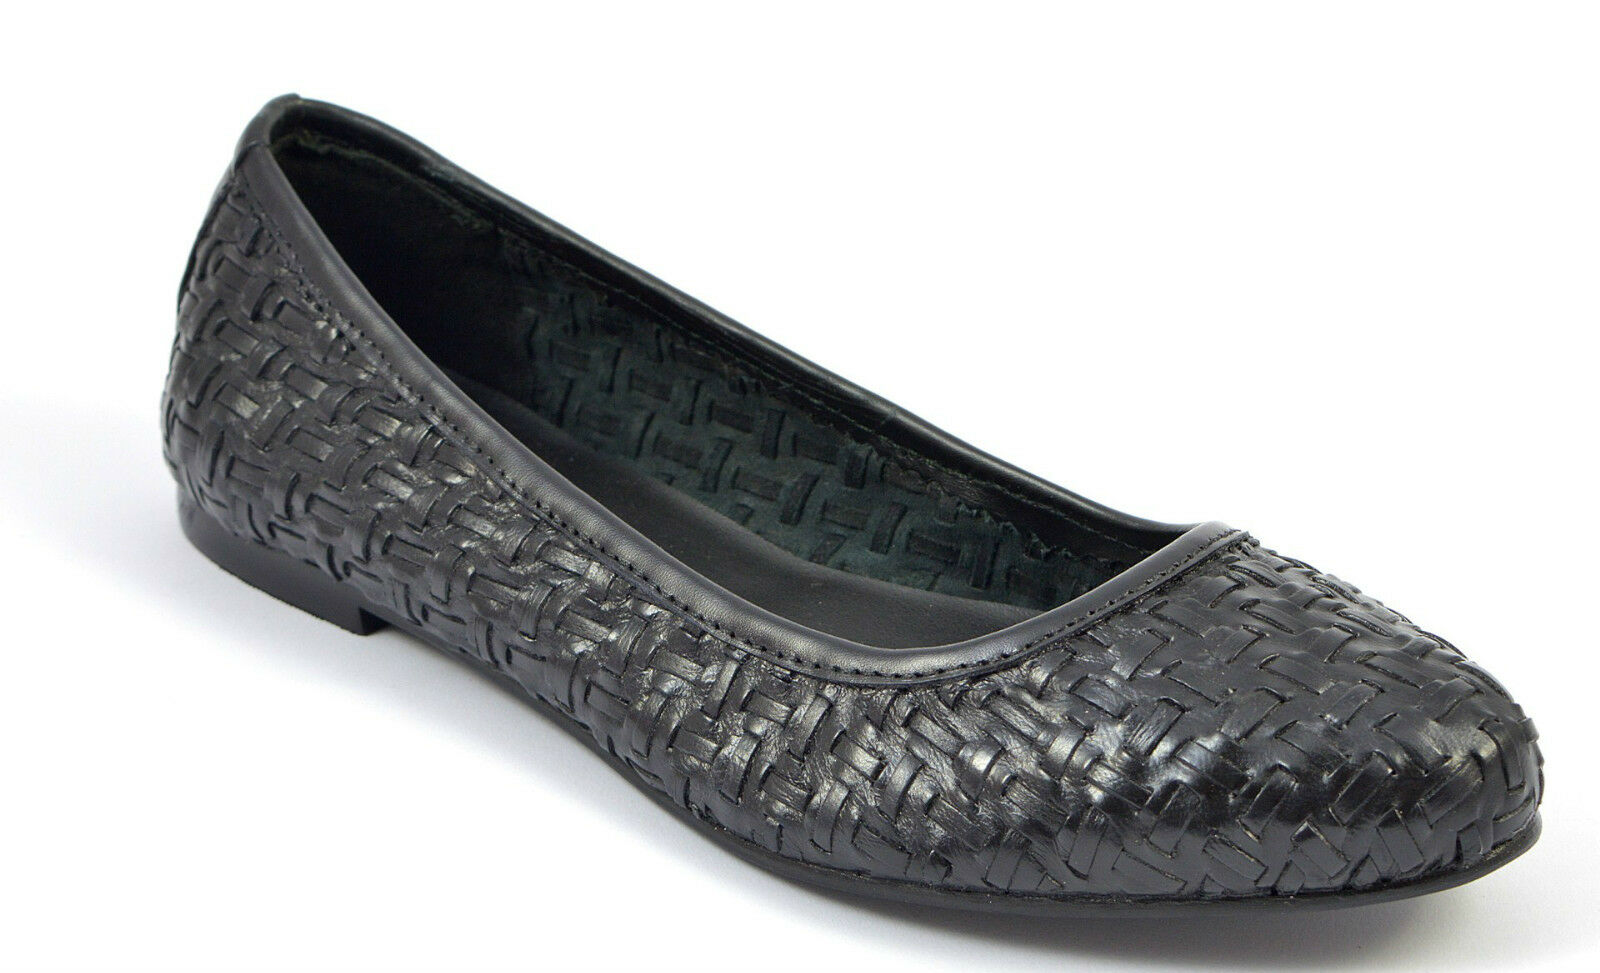 Womens Ladies Black Woven Leather Pumps Flats Shoes Ballerina Loafers Toe Heel